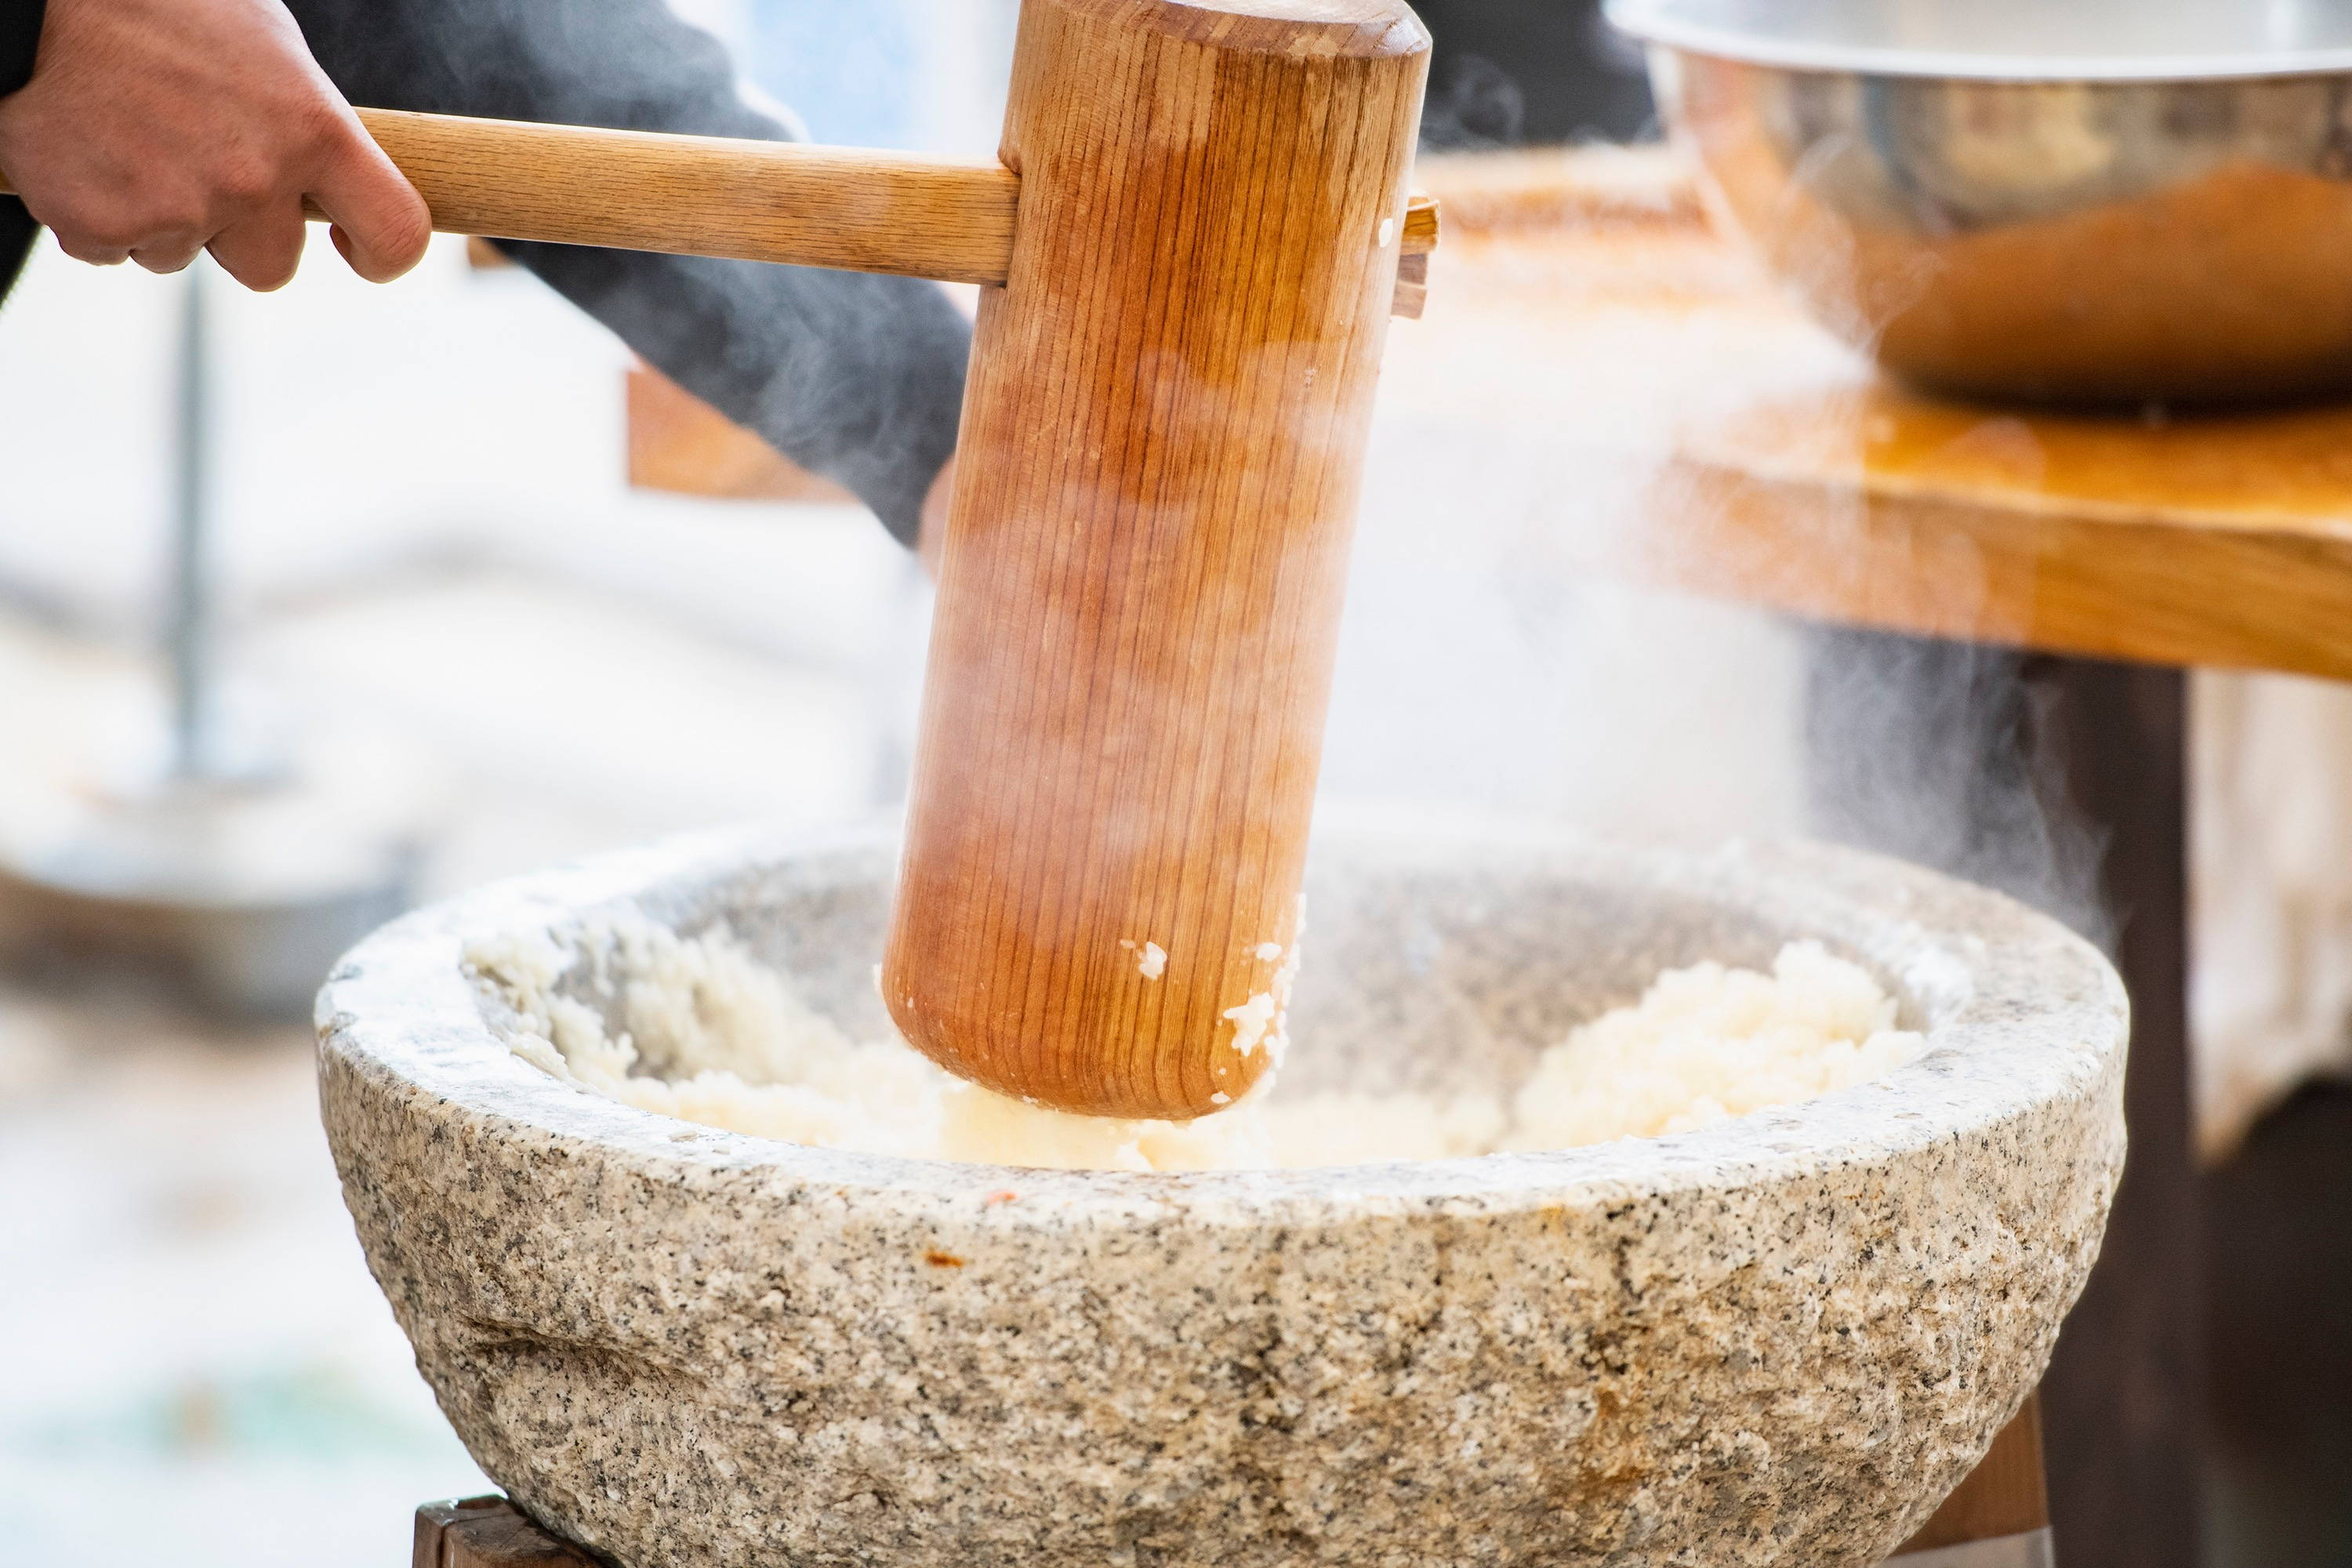 pounding steamed rice grains using mortar and pestle.